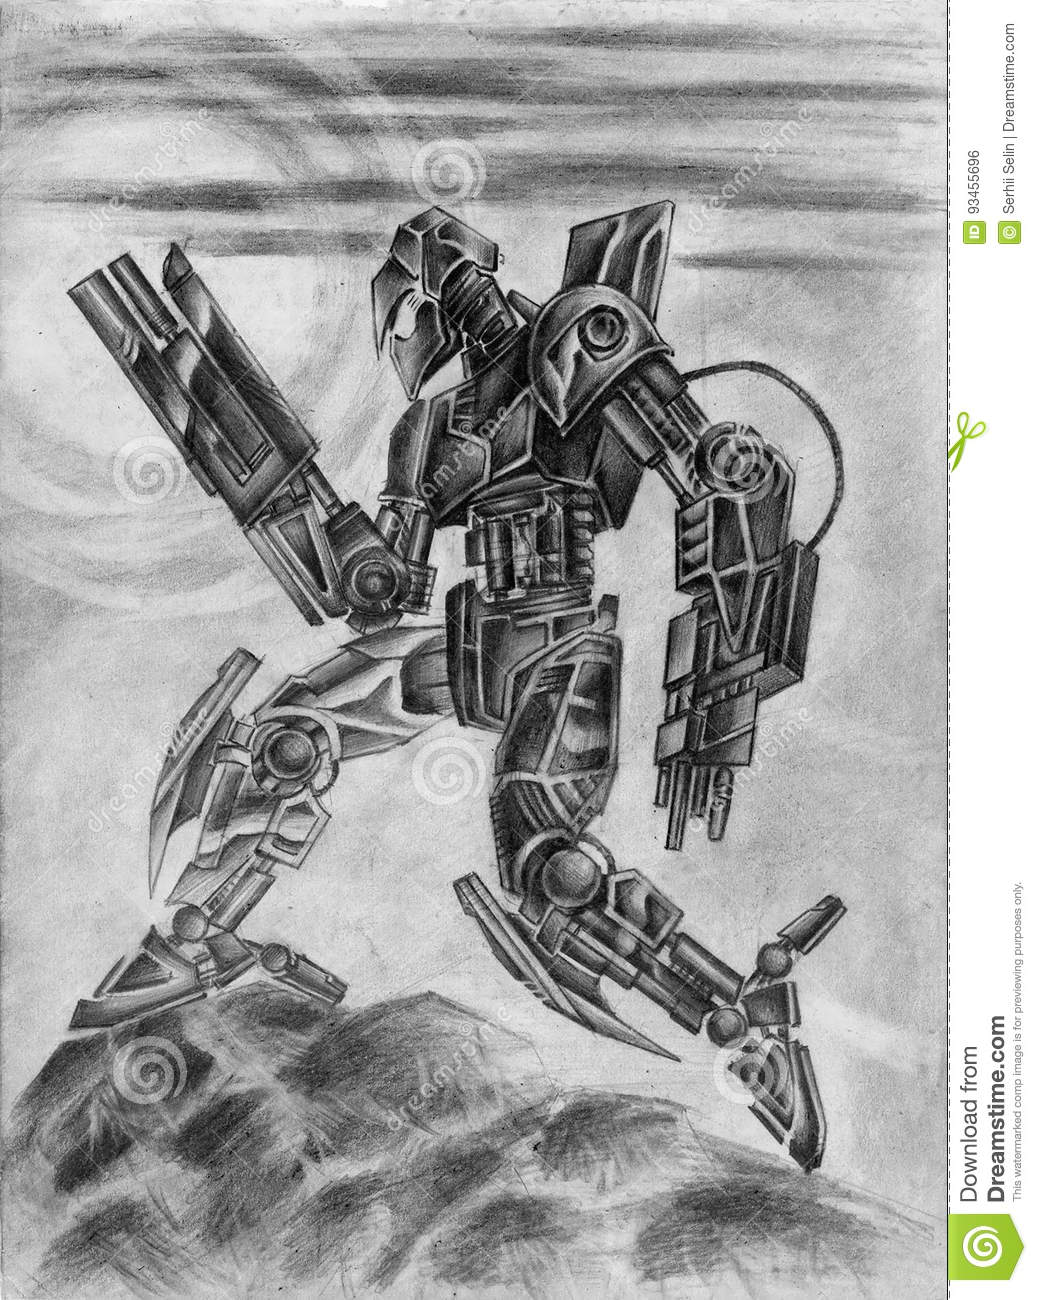 Combat black robot science fiction illustration in black and white colors freehand pencil drawing